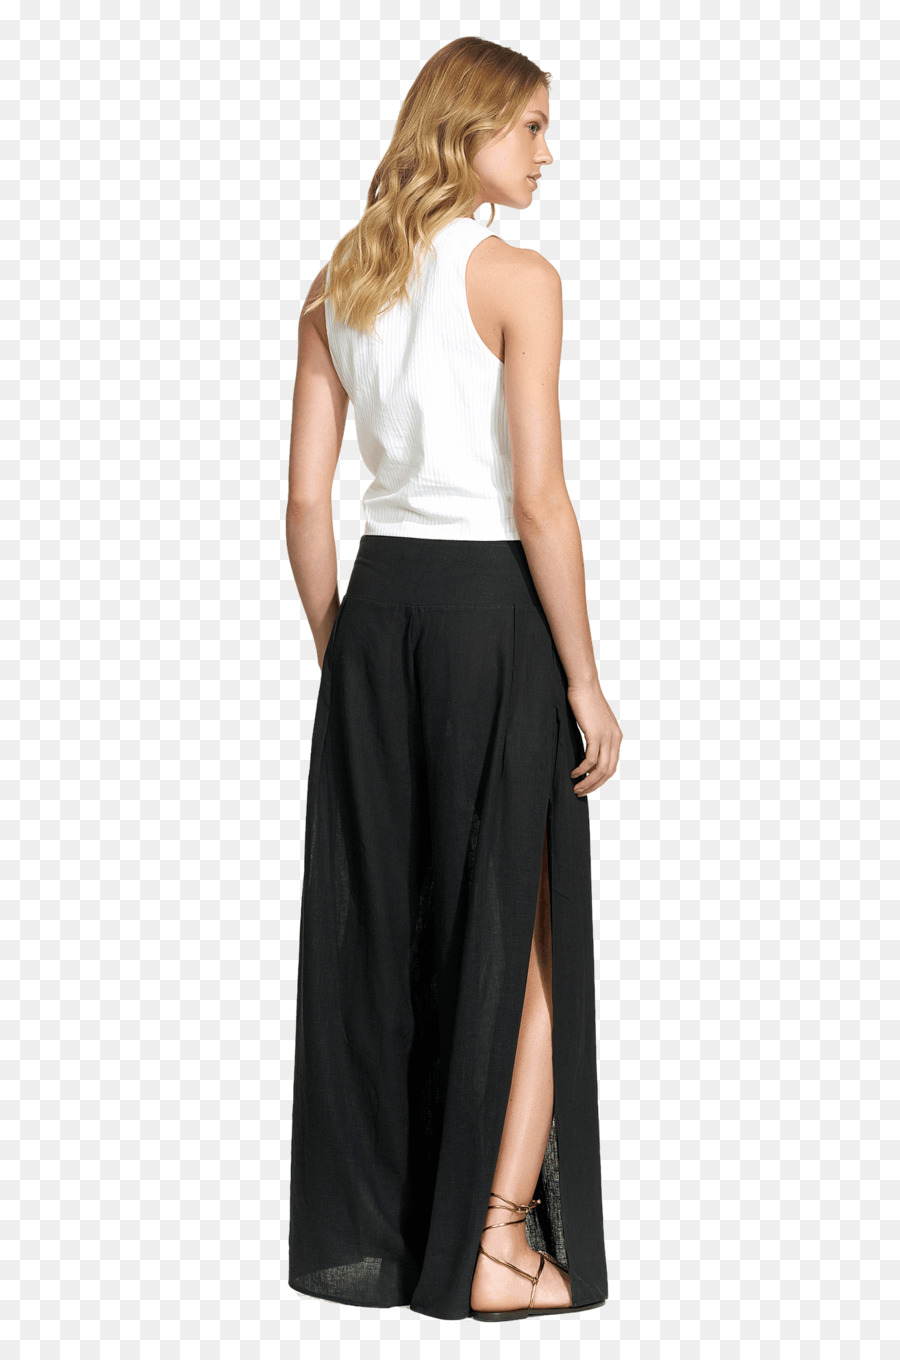 3d3f383cce8 Waist Dress Gown Skirt Pants - white blouse png download - 1314 1983 - Free  Transparent Waist png Download.